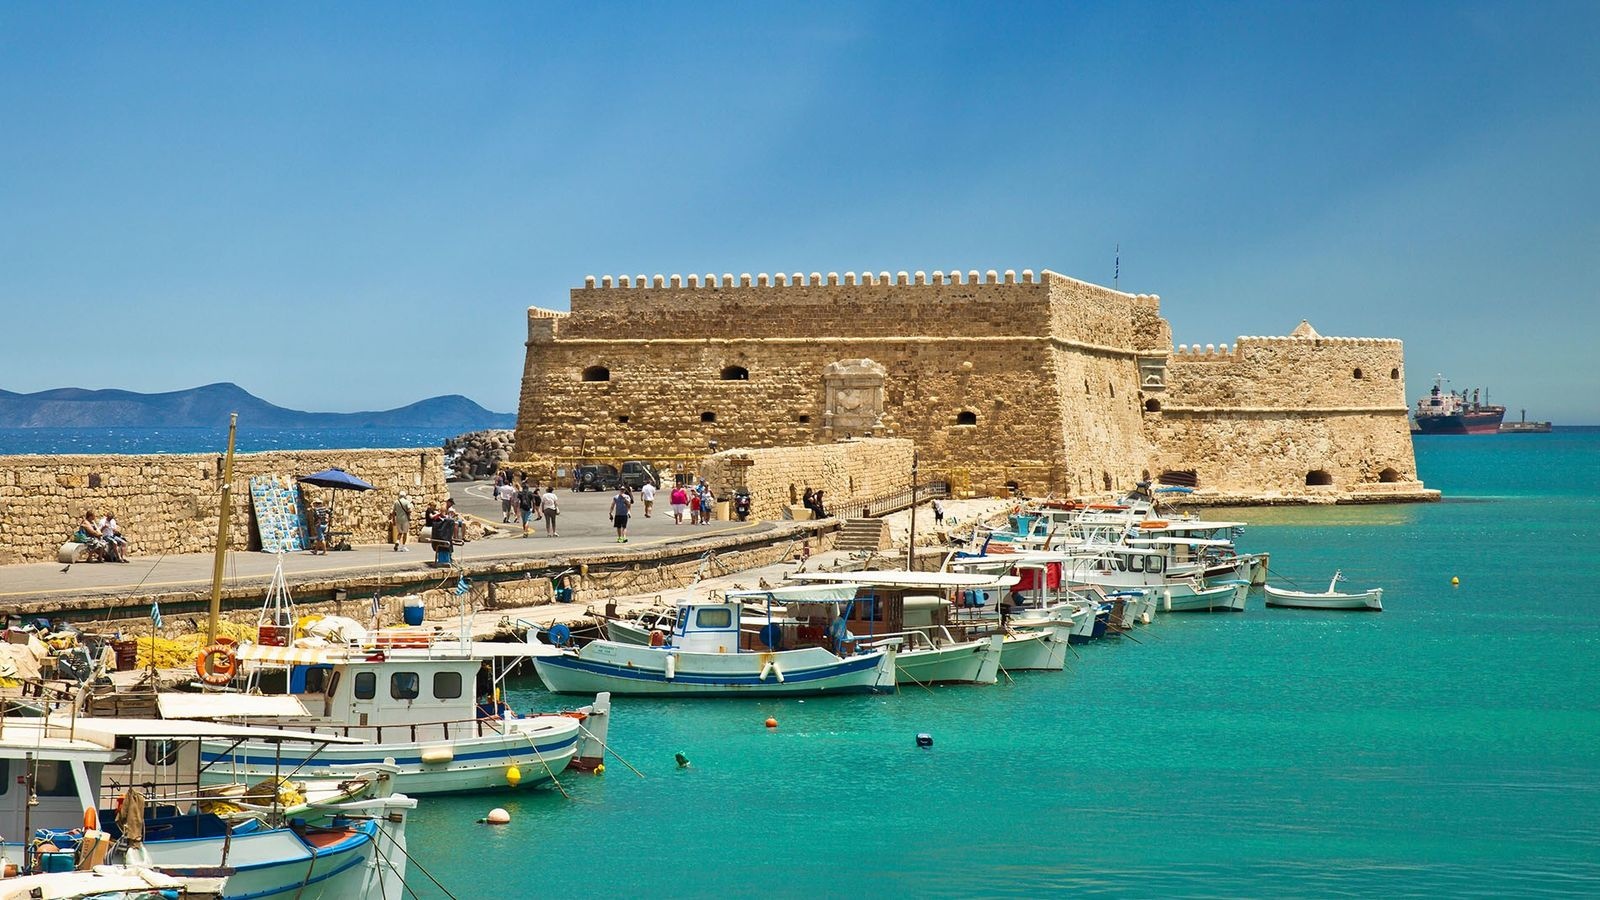 The capital of Crete, Heraklion, is famed for both the Palace of Knossos dating back to the Minoan civilisation and ...